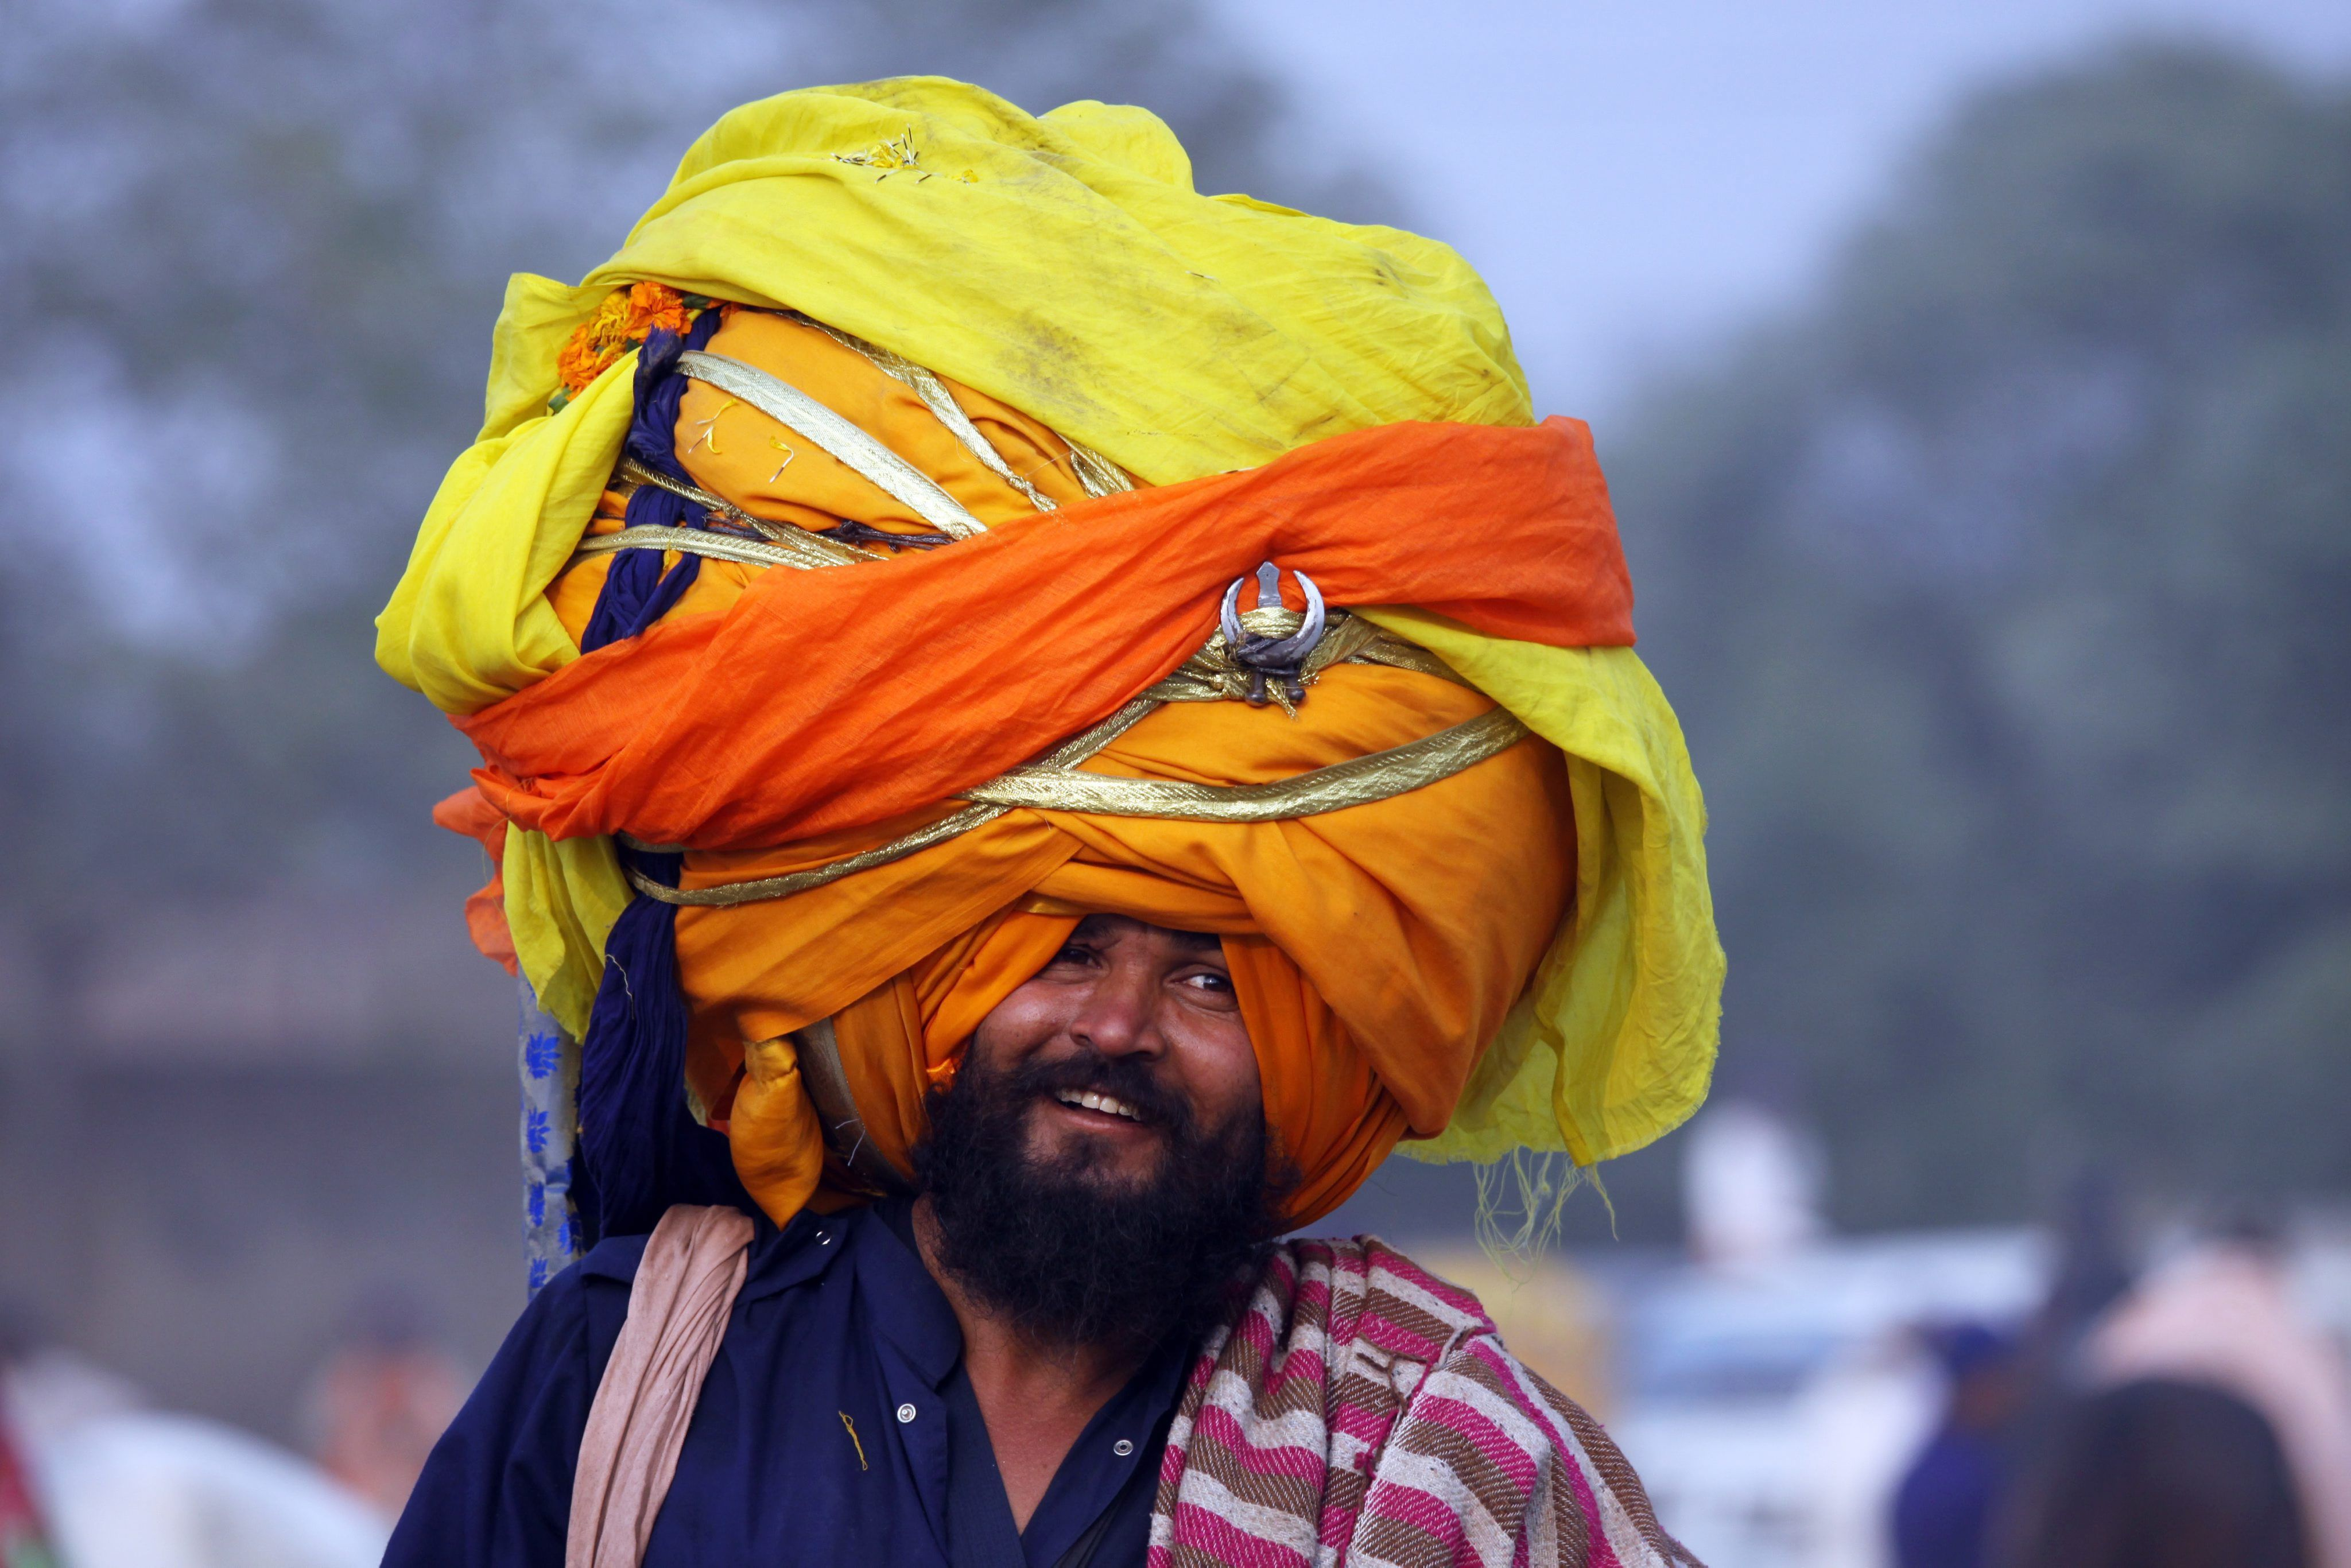 Pictures say a thousand words...An Indian 'Nihang' or a man whose ancestors belonged to Sikh warrior clan, smiles supporting an over-sized turban as he takes part in a religious procession called Mohalla in Amritsar, India. (Photo: Newscom)